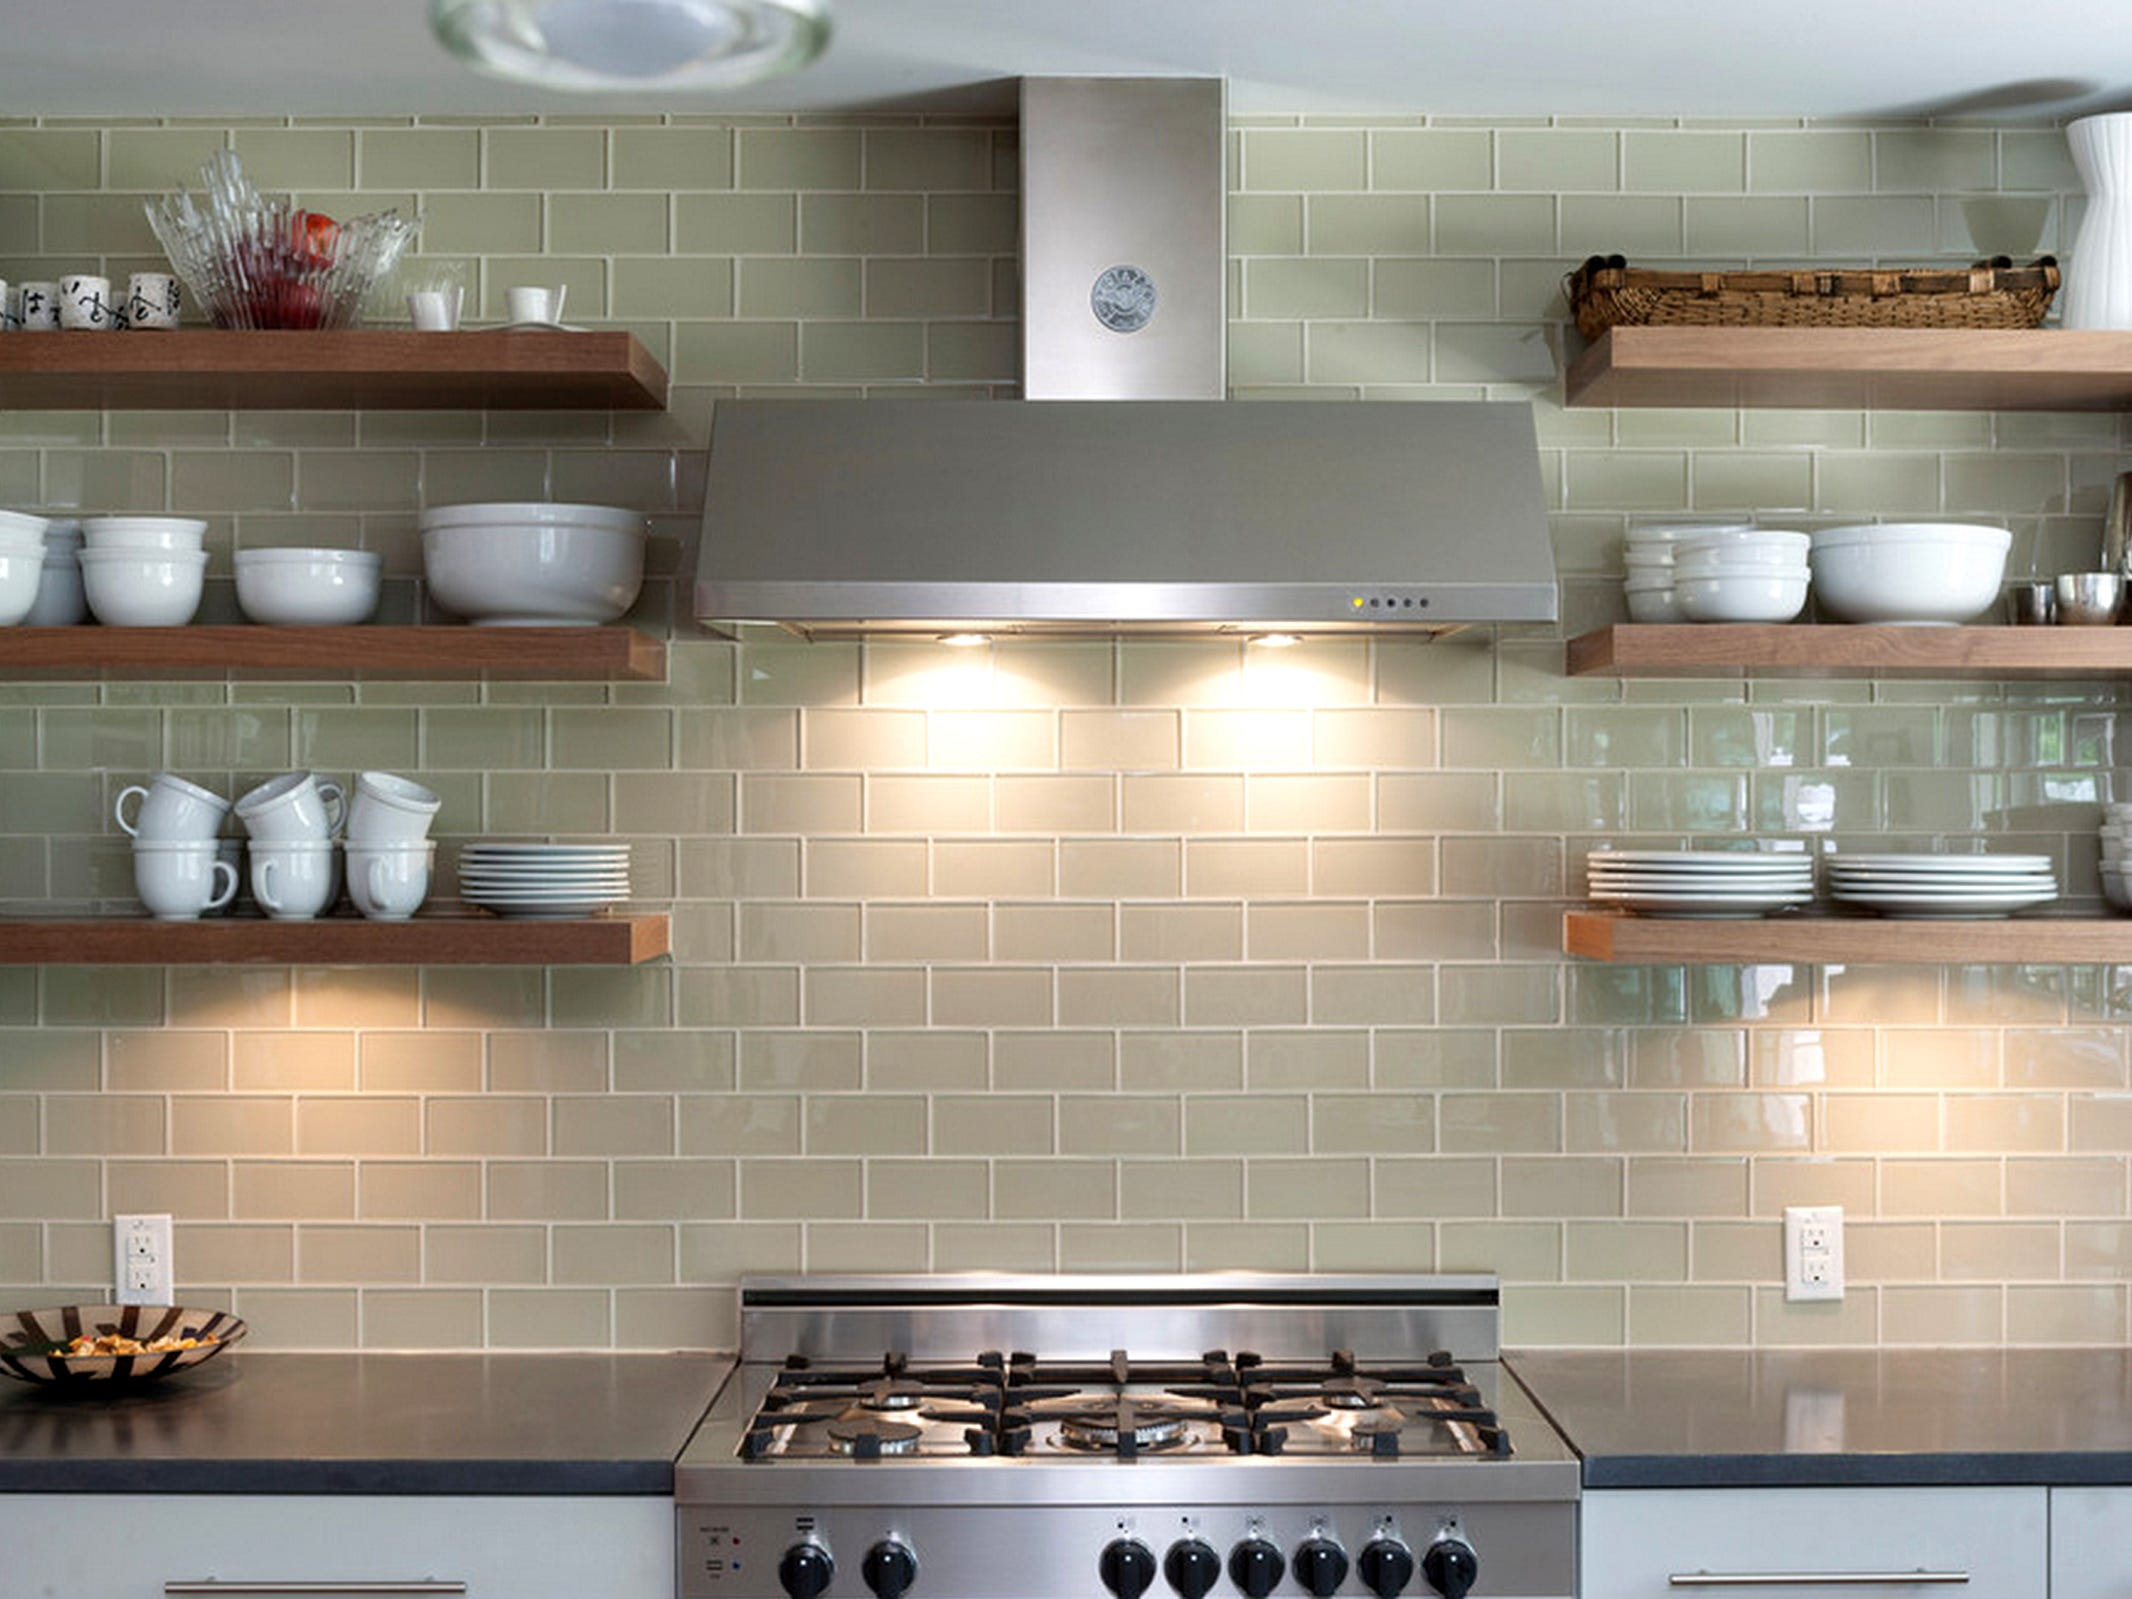 With open shelves, a tile backsplash can extend all the way up to the ceiling.